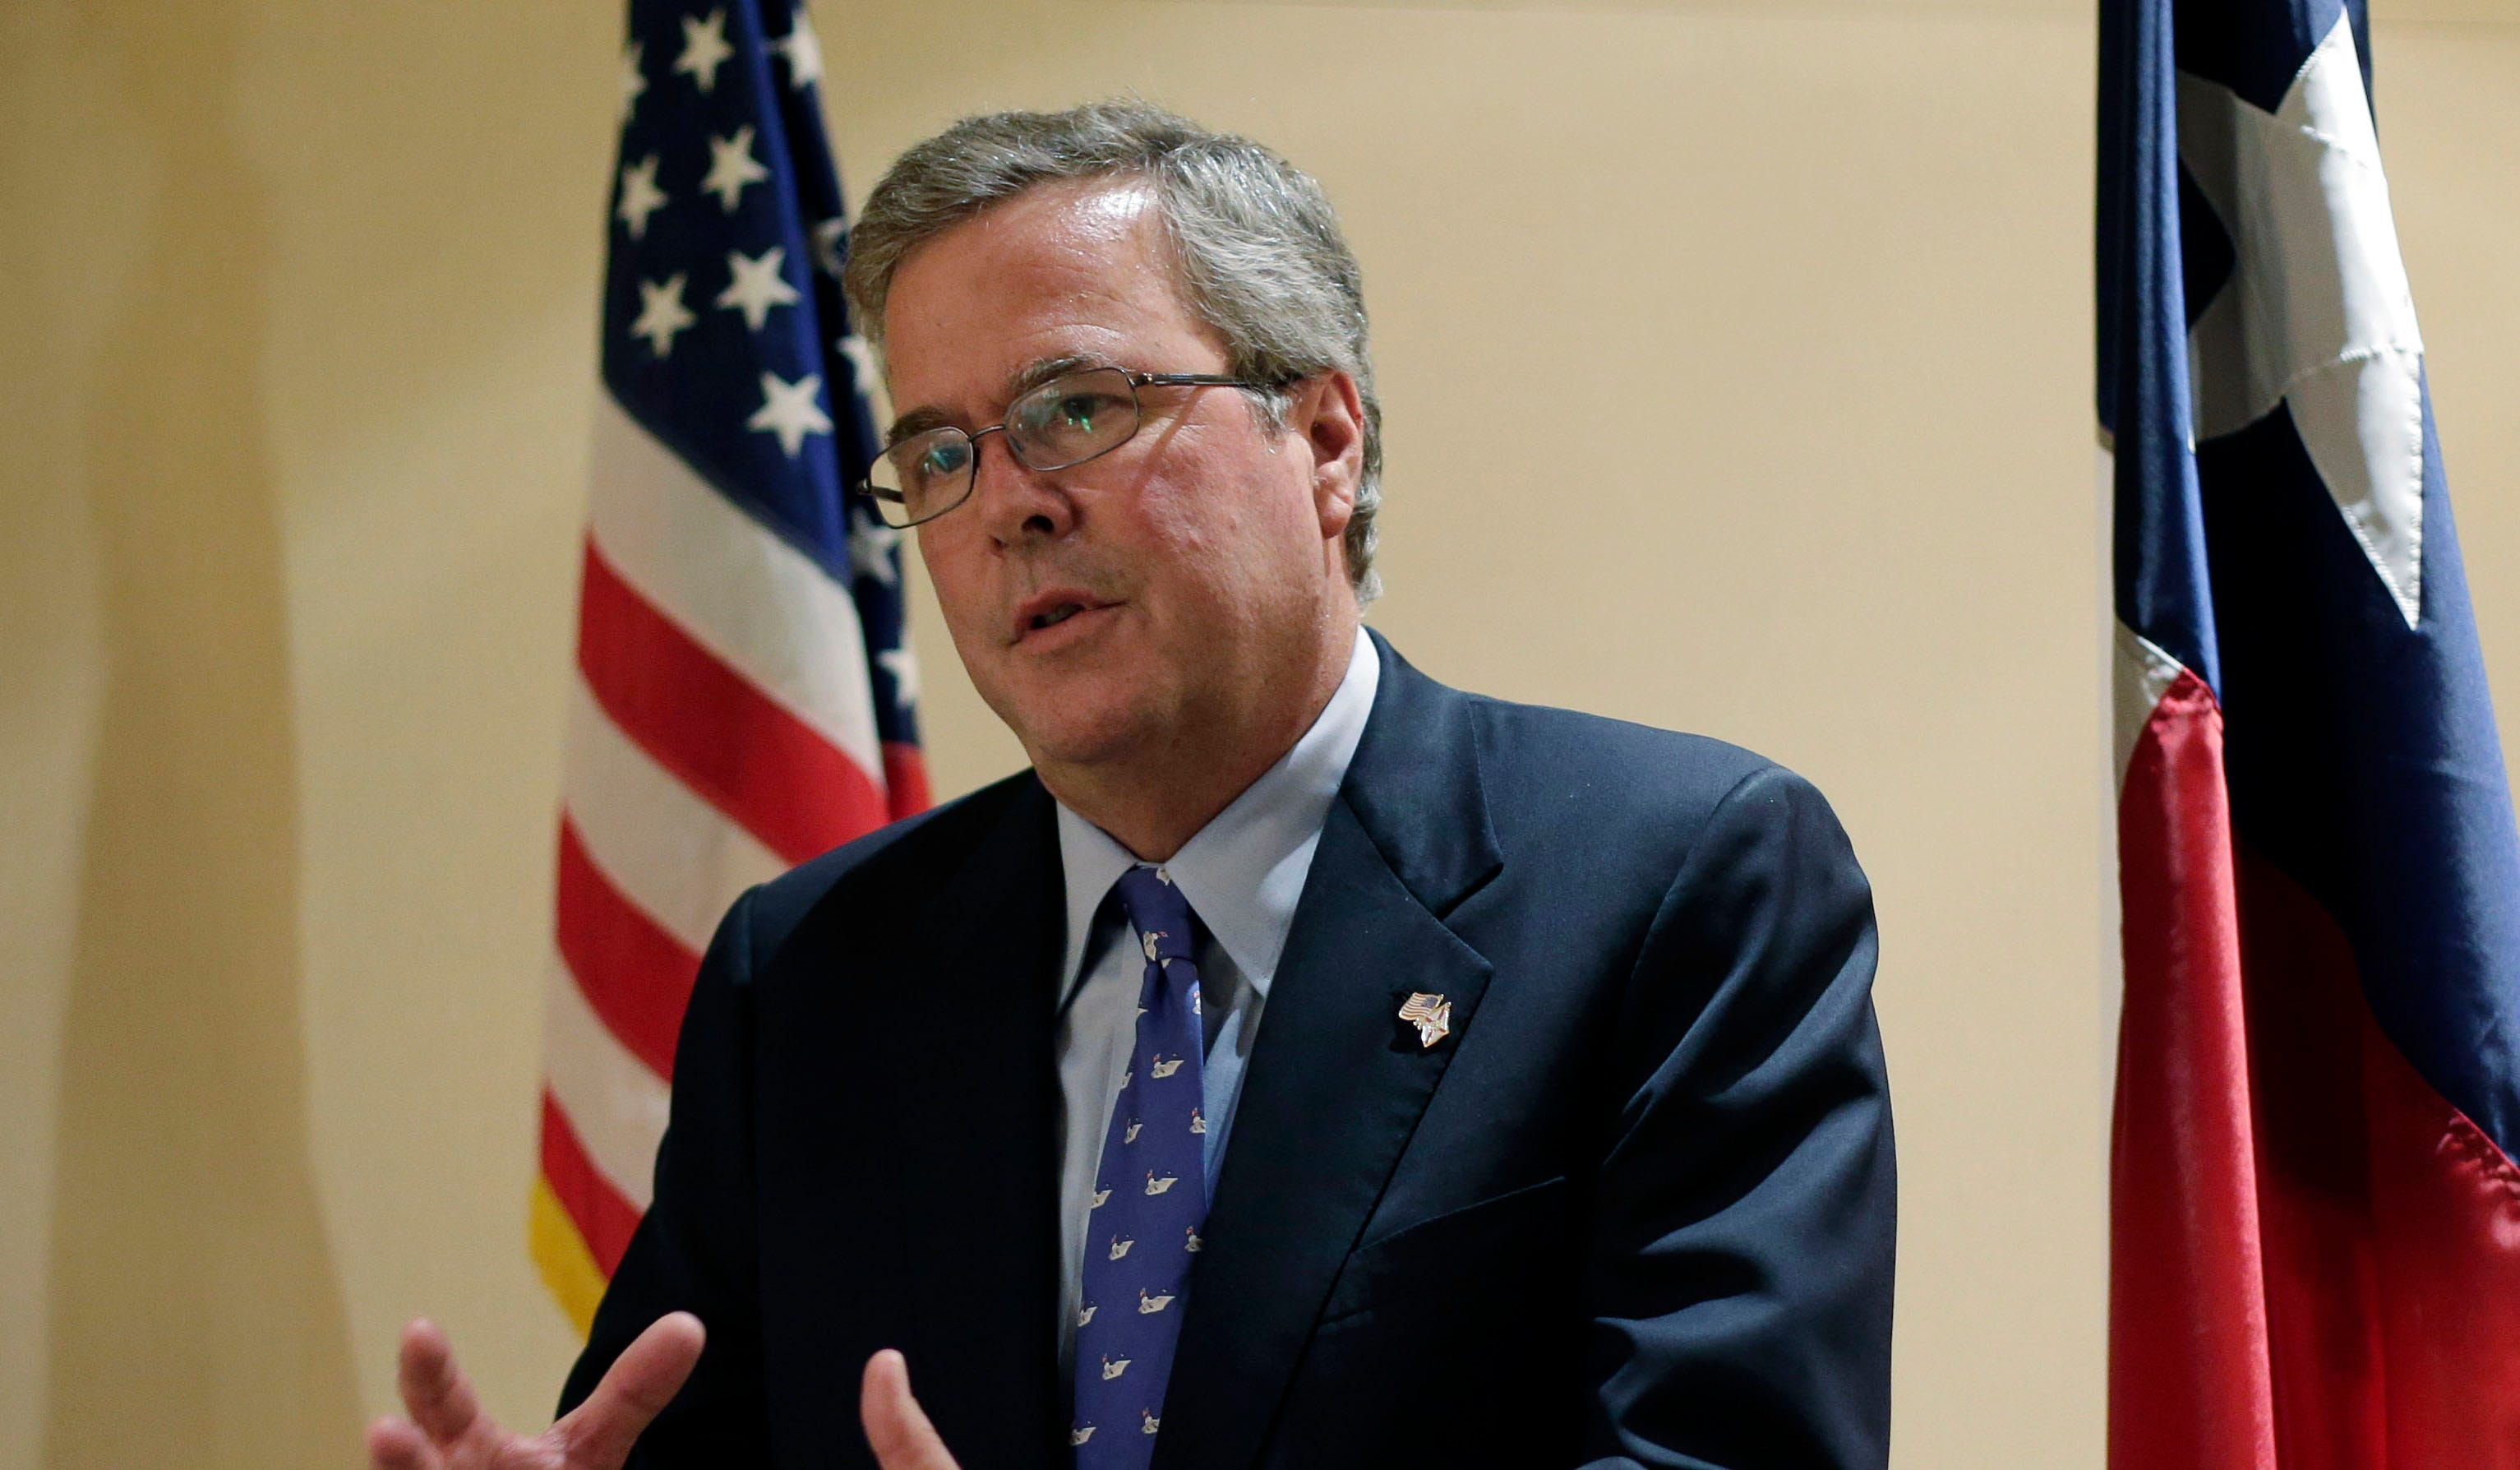 Jeb Bush: 'I'm Thinking About Running for President'